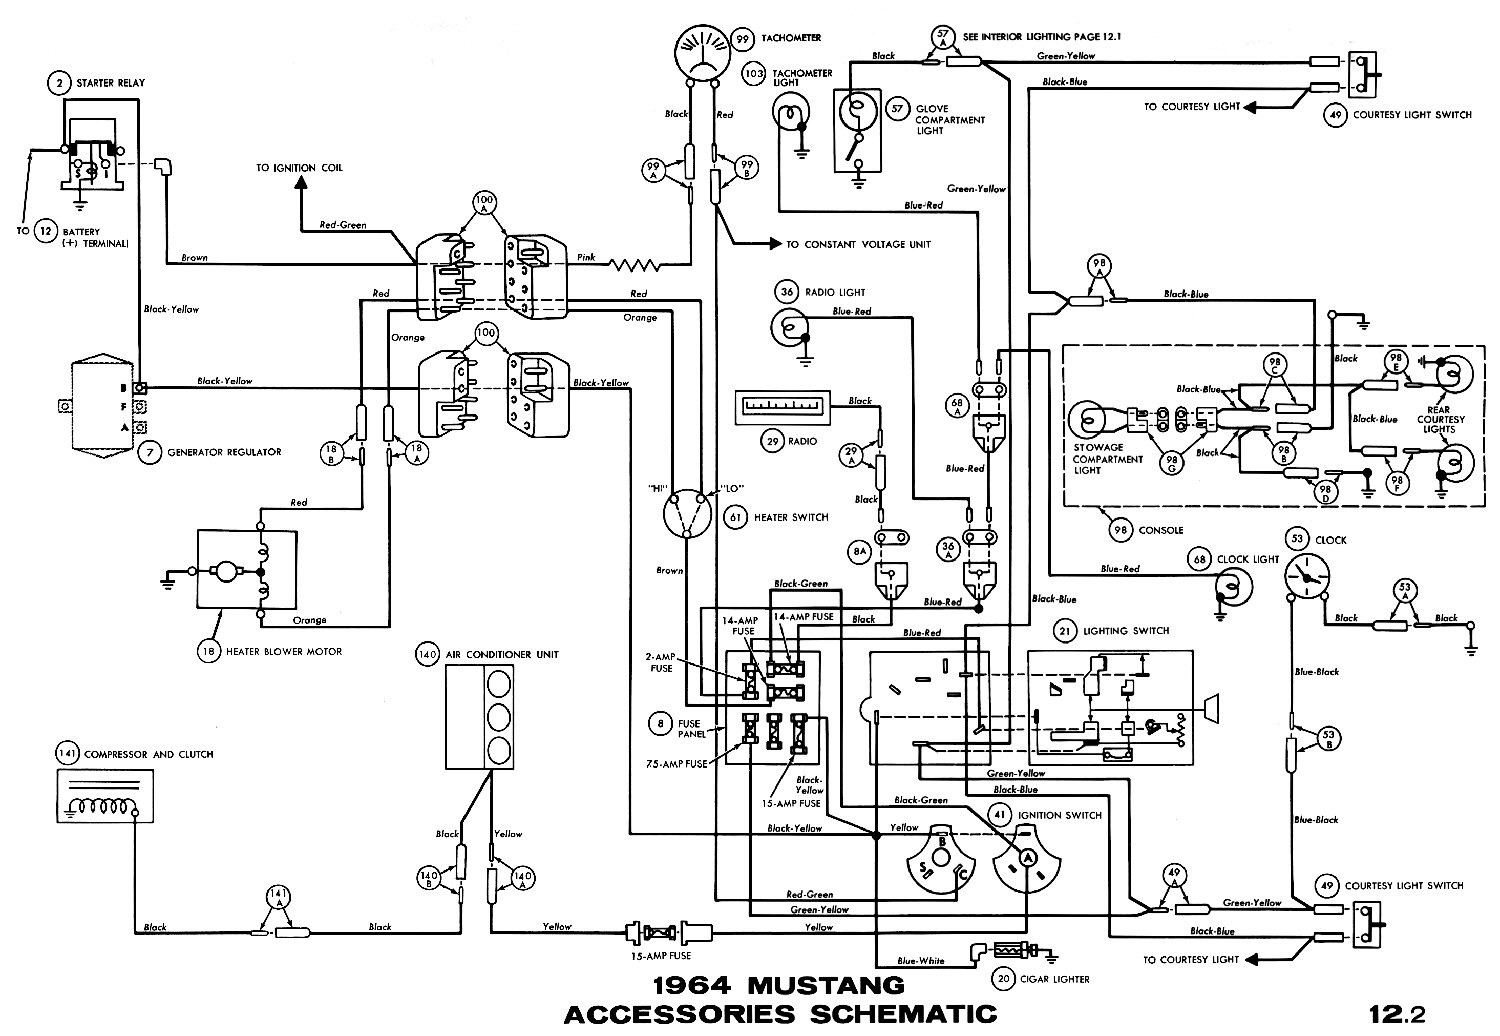 Tec Wiring Diagram Mustang Dash Mercury Outboard 5005800 Brp Evinrude Ignition Switch 65mustangelectricaldiagram 1966 Diagrams Average Rh Botarena Co